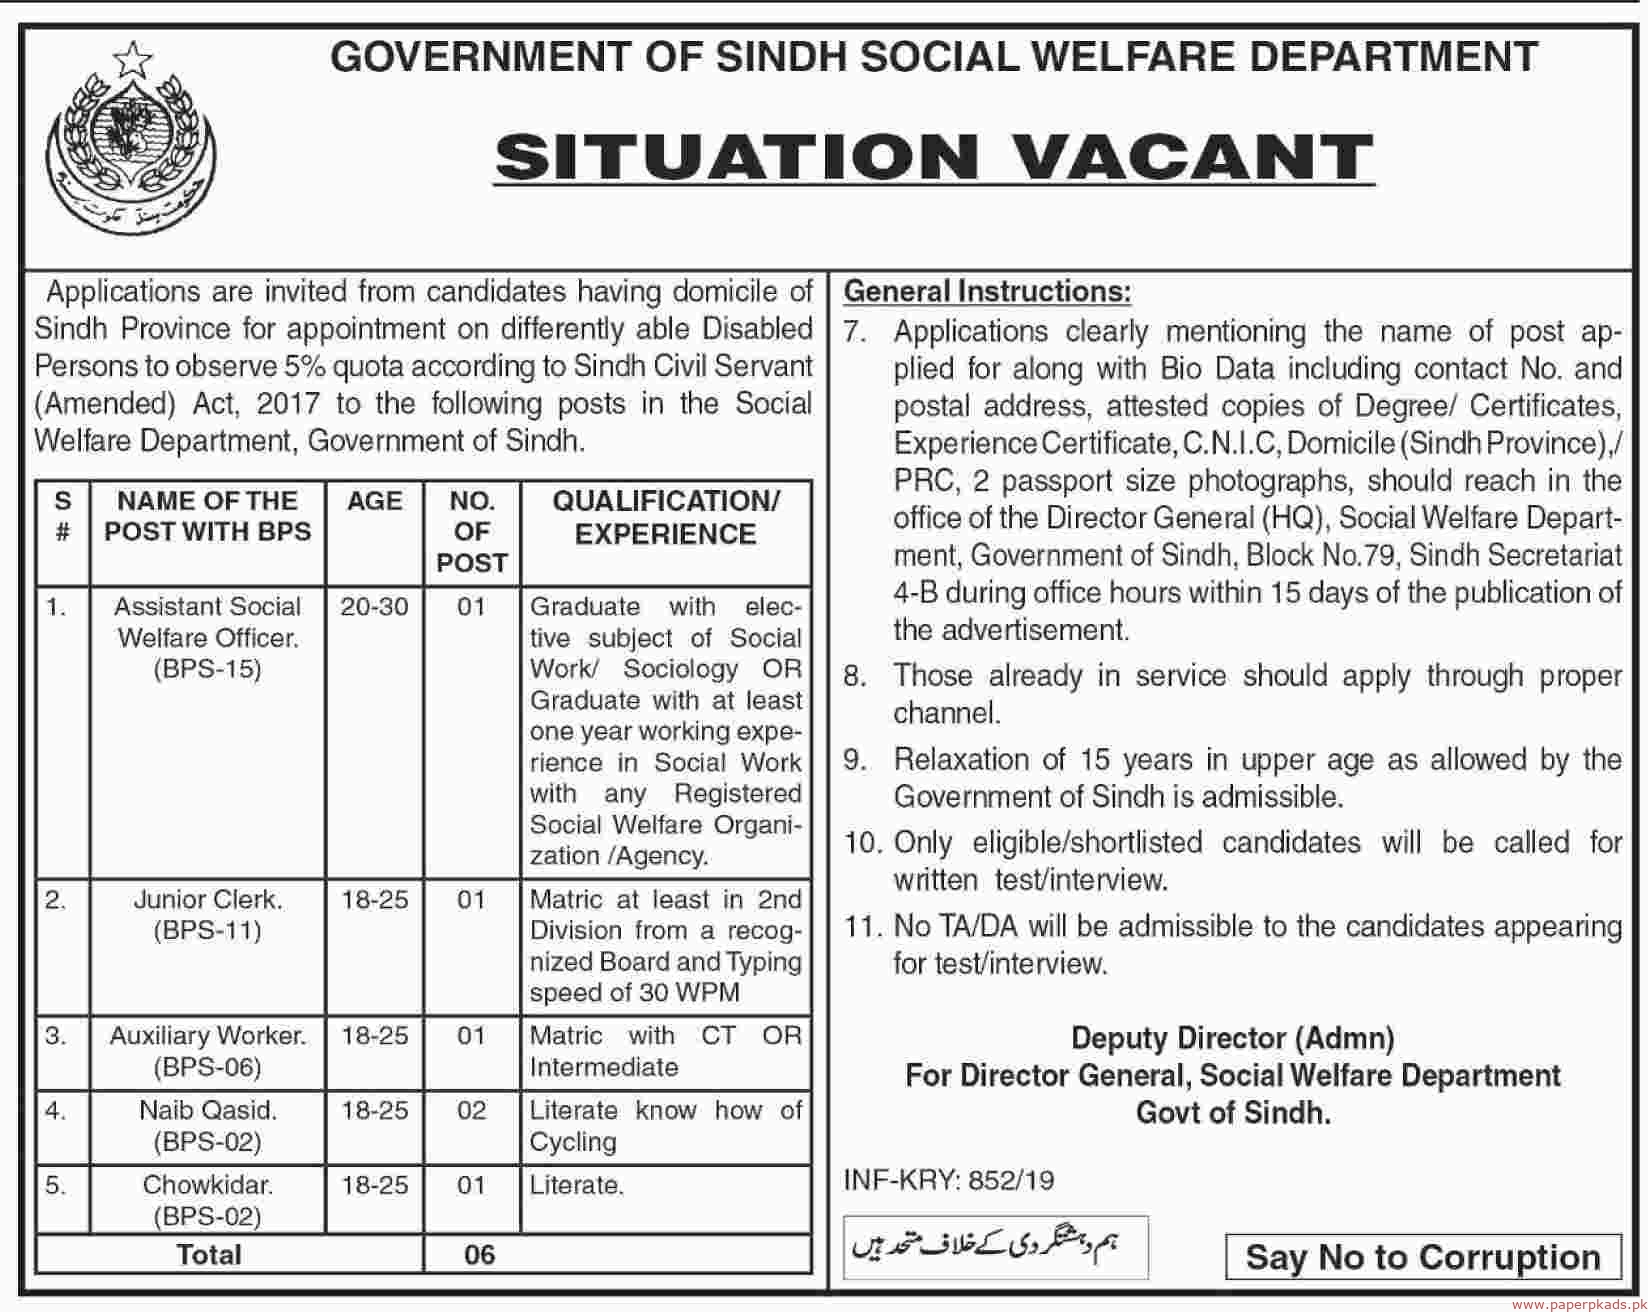 Government of Sindh - Social Welfare Department Jobs 2019 Latest